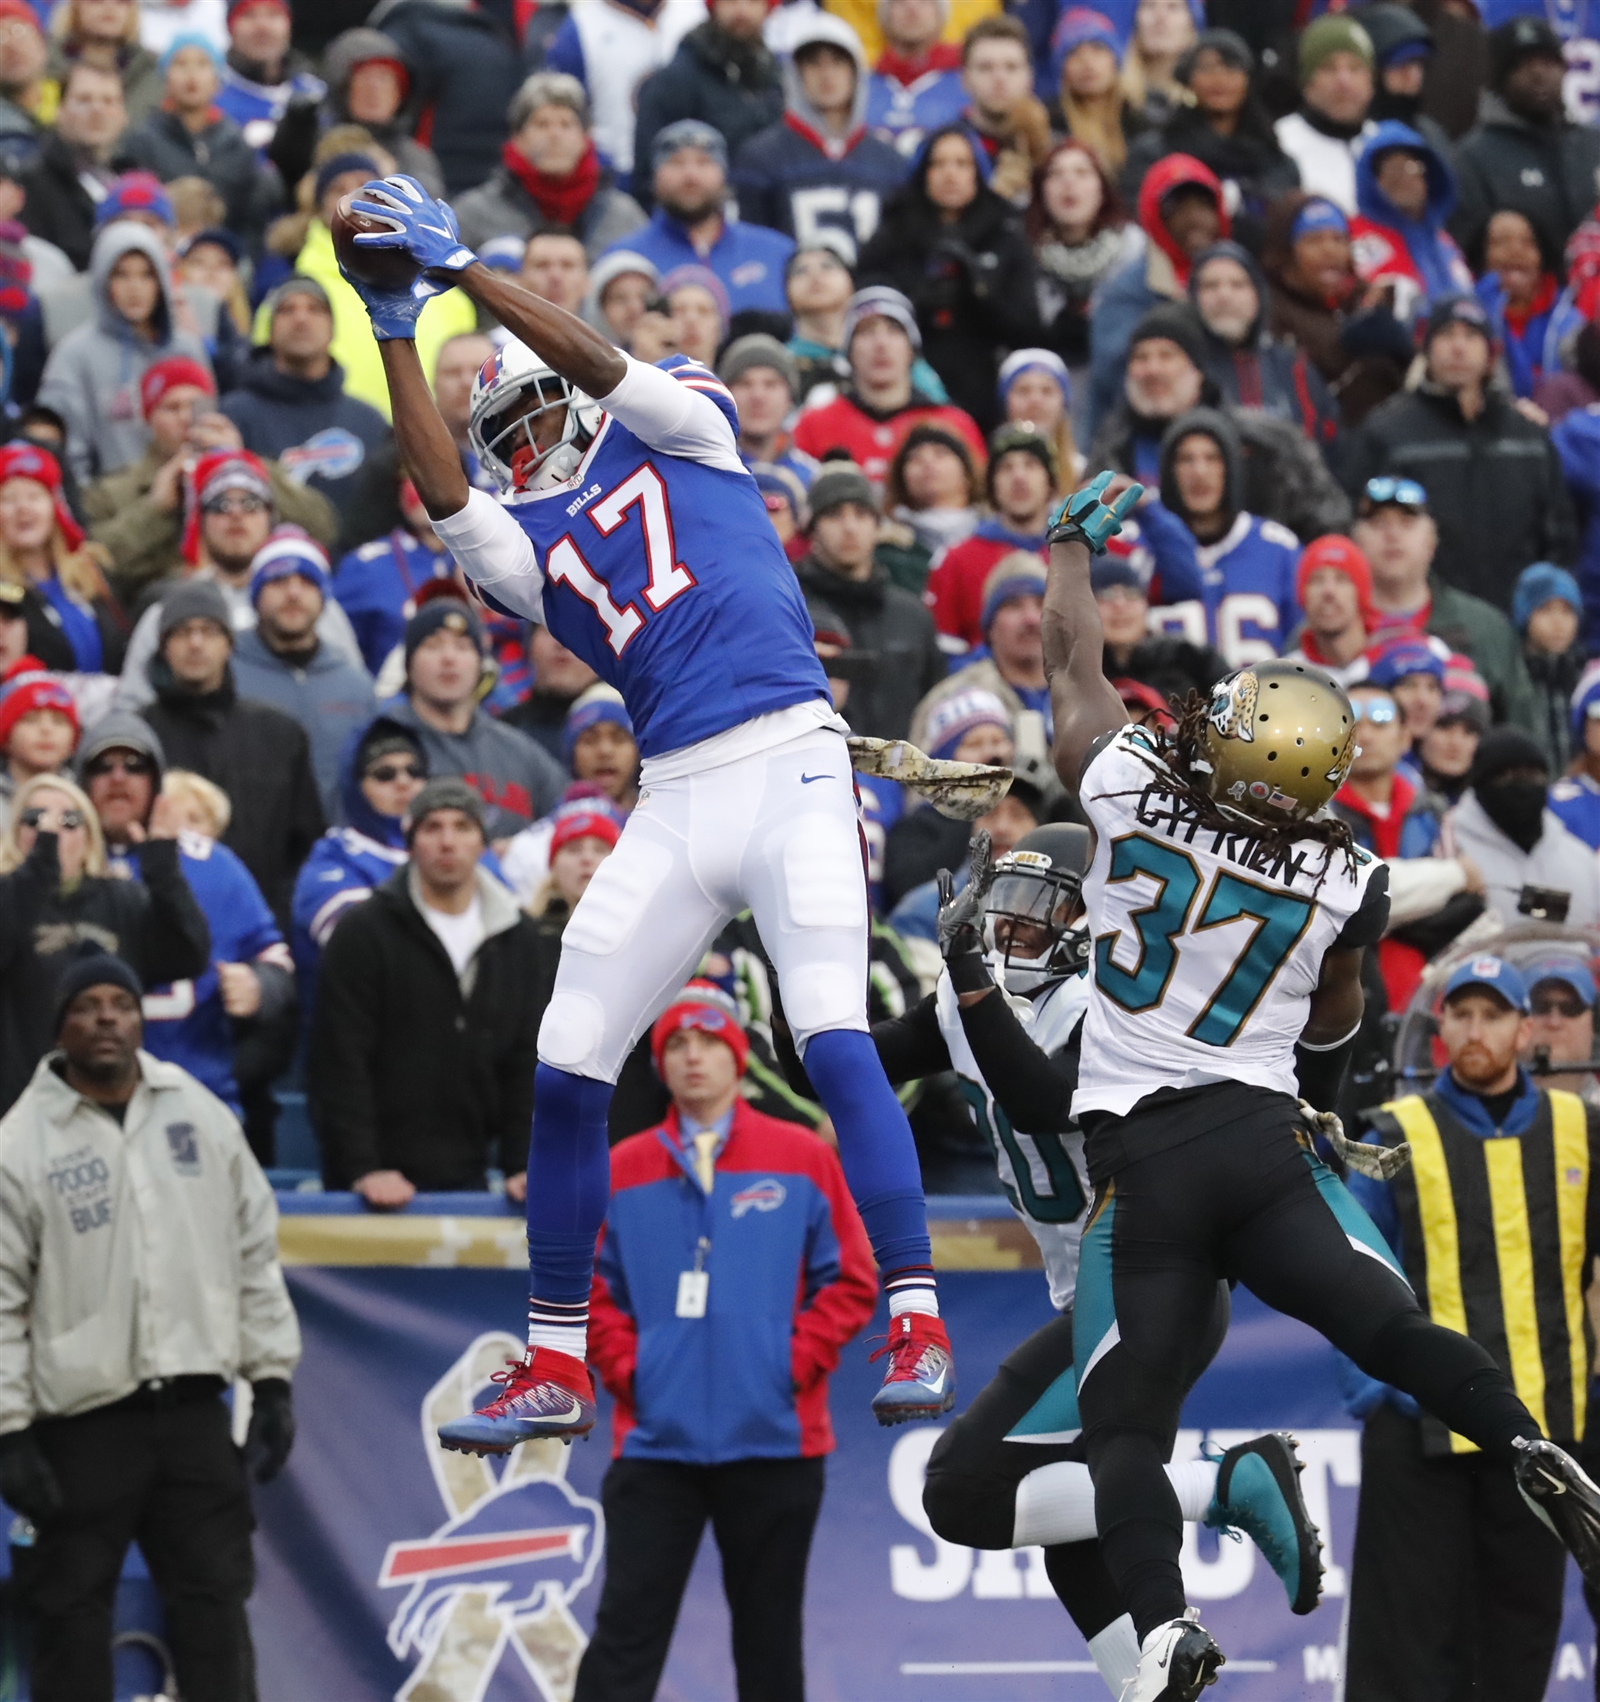 1. Going Vertical. Tyrod Taylor put his pass up high on the 16-yard TD strike to Justin Hunter with 10:46 left in the game. The Bills created a matchup advantage by using an empty backfield and five receivers on the second-and-11 play. The 6-foot-4 Hunter was in the right slot with LeSean McCoy lined up to the far right. That put 6-foot safety Johnathan Cyprien one on one with Hunter, who ran a corner route.